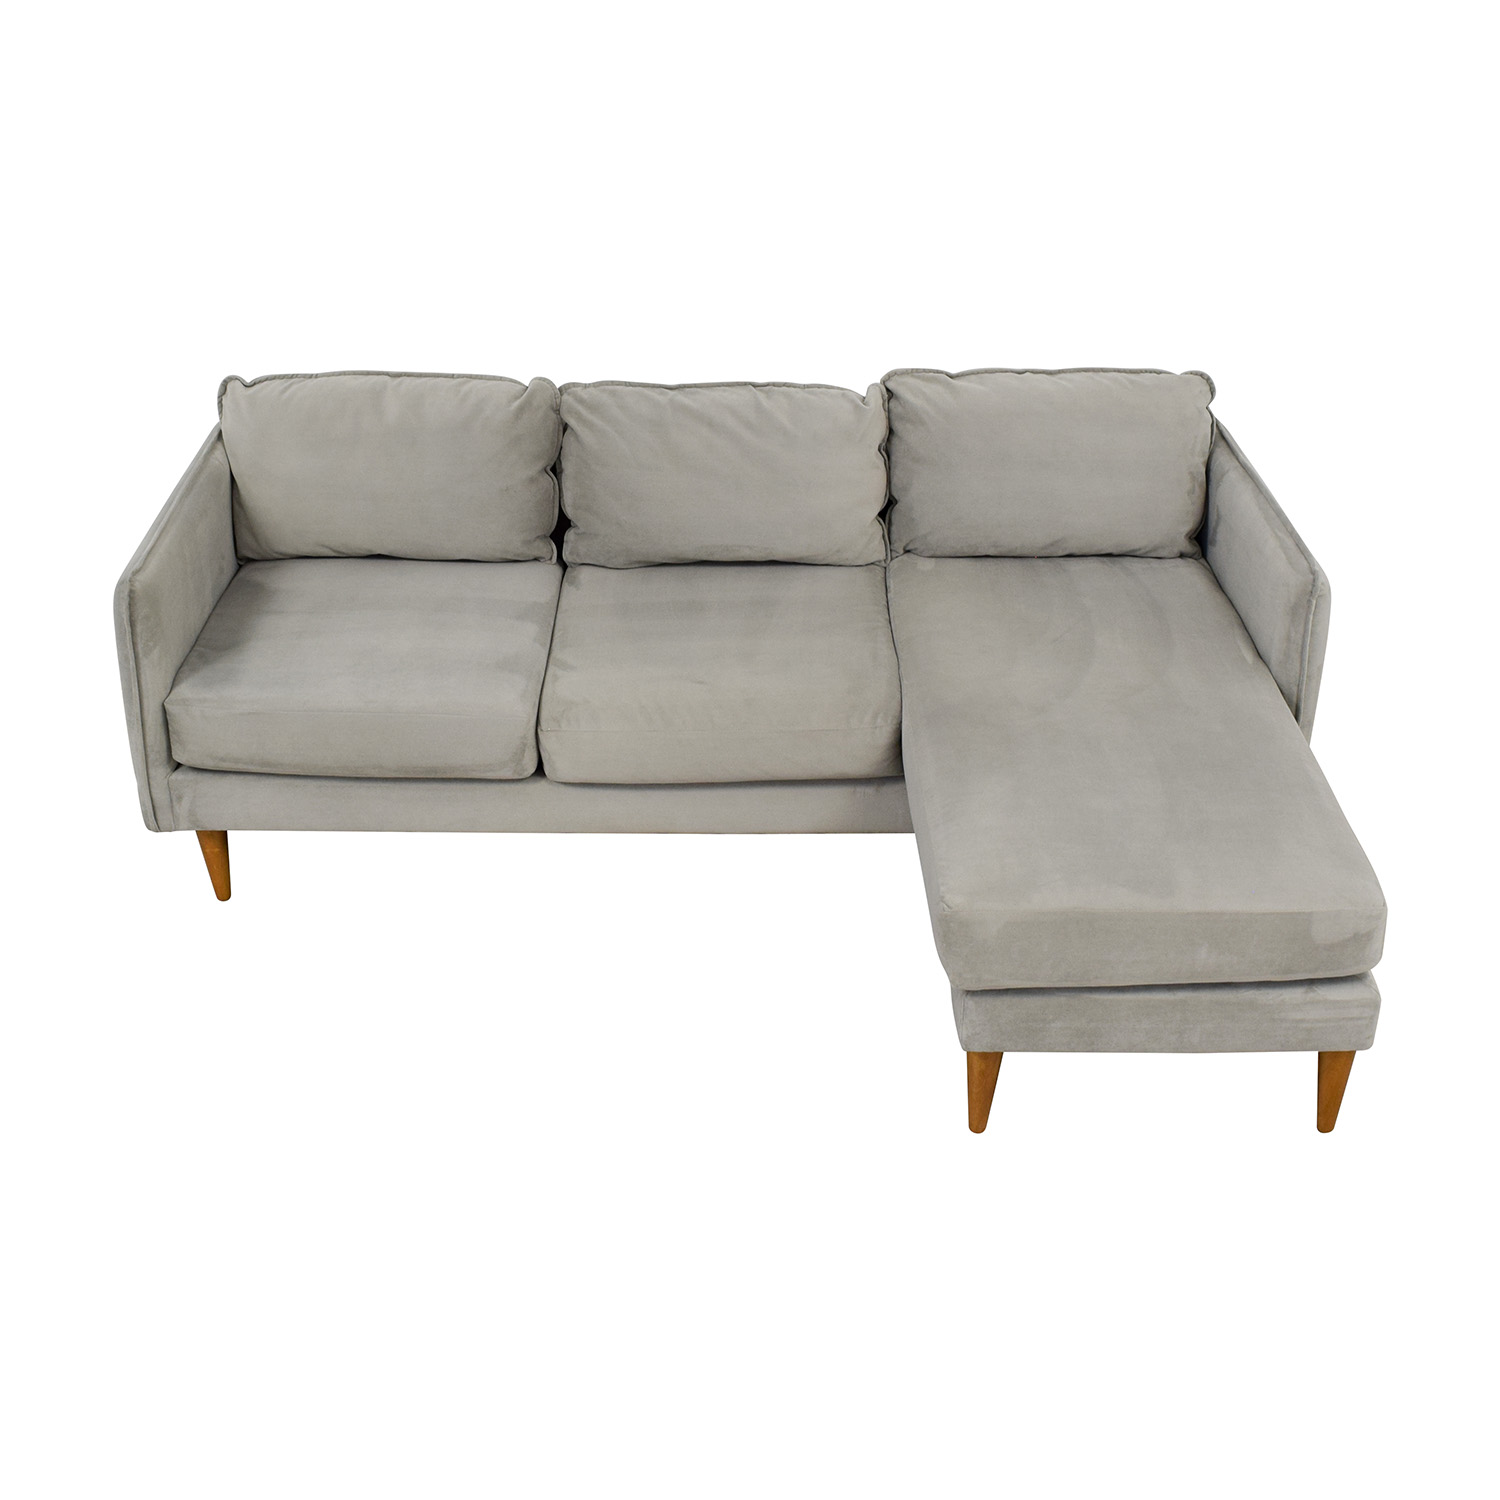 58% OFF - West Elm West Elm Mid Century Chaise Sectional Sofa / Sofas